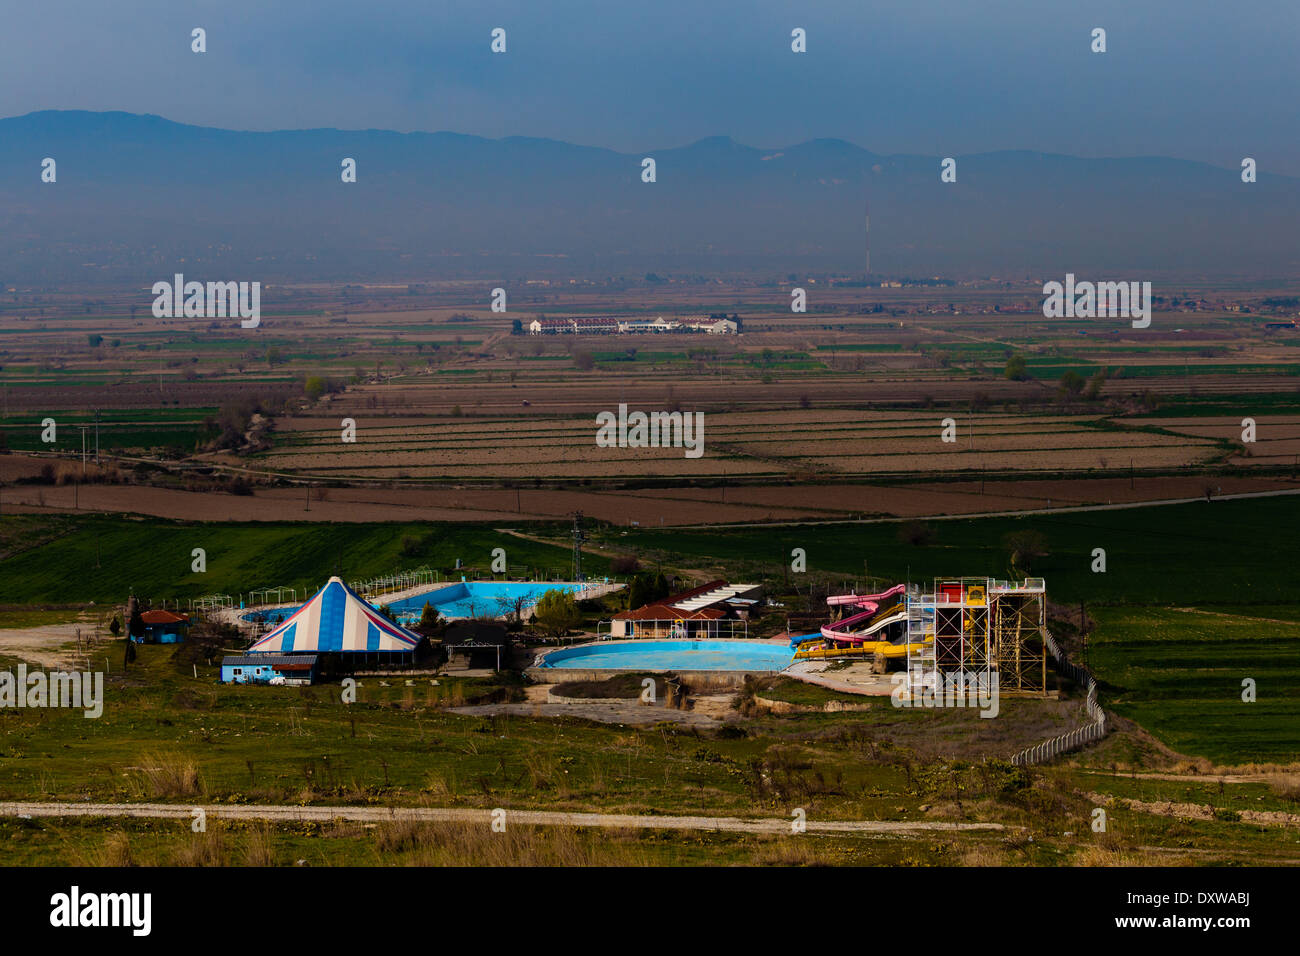 Fun Park and swimming pool in Landscape - Stock Image